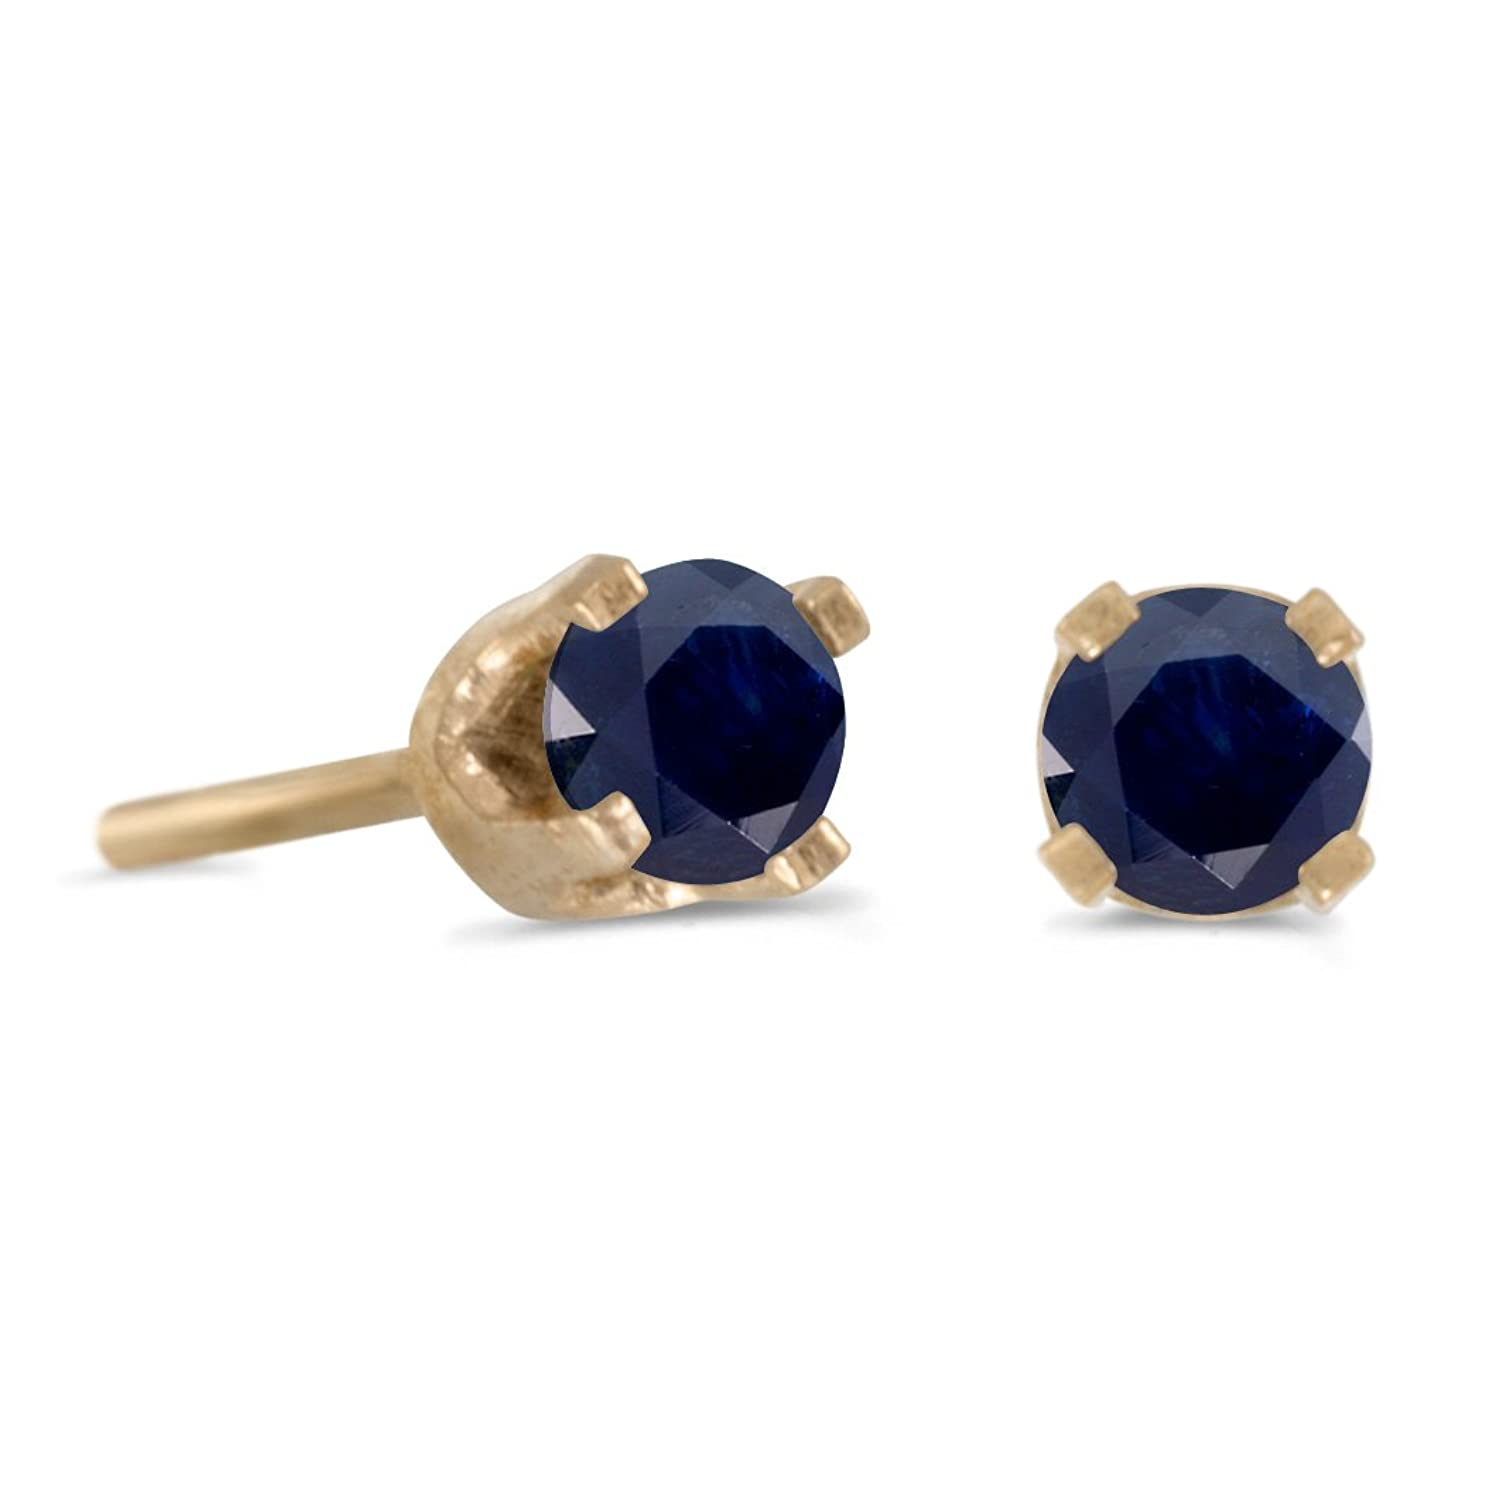 simply knob earrings ip stud com ball walmart gold yellow